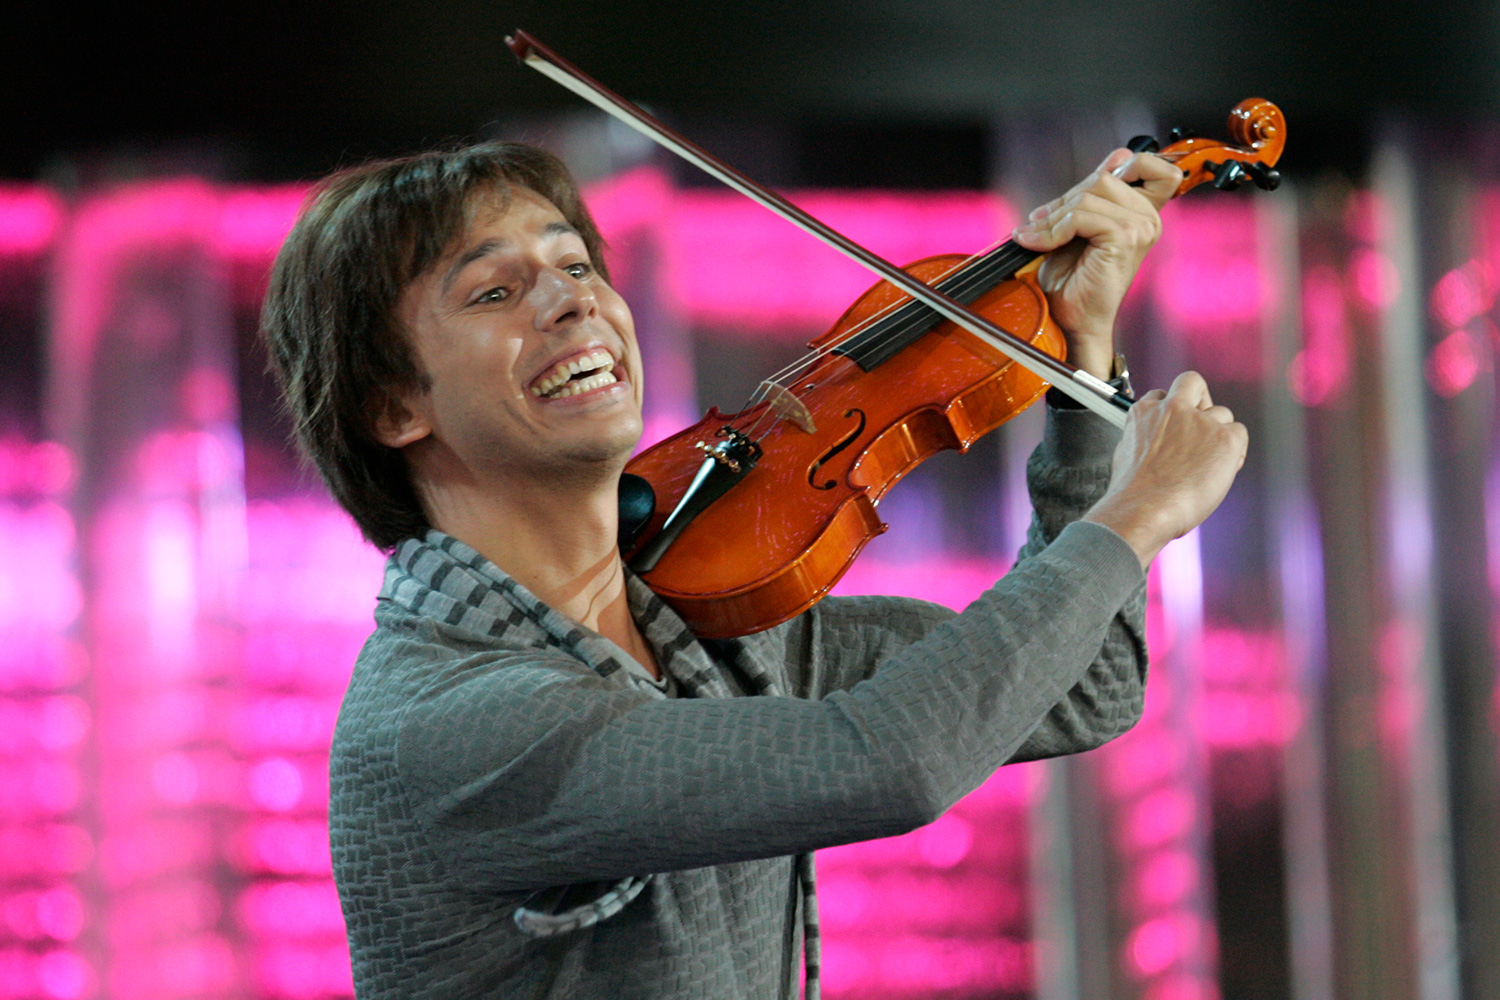 The photo shows the comedian hamming it up with a violin.